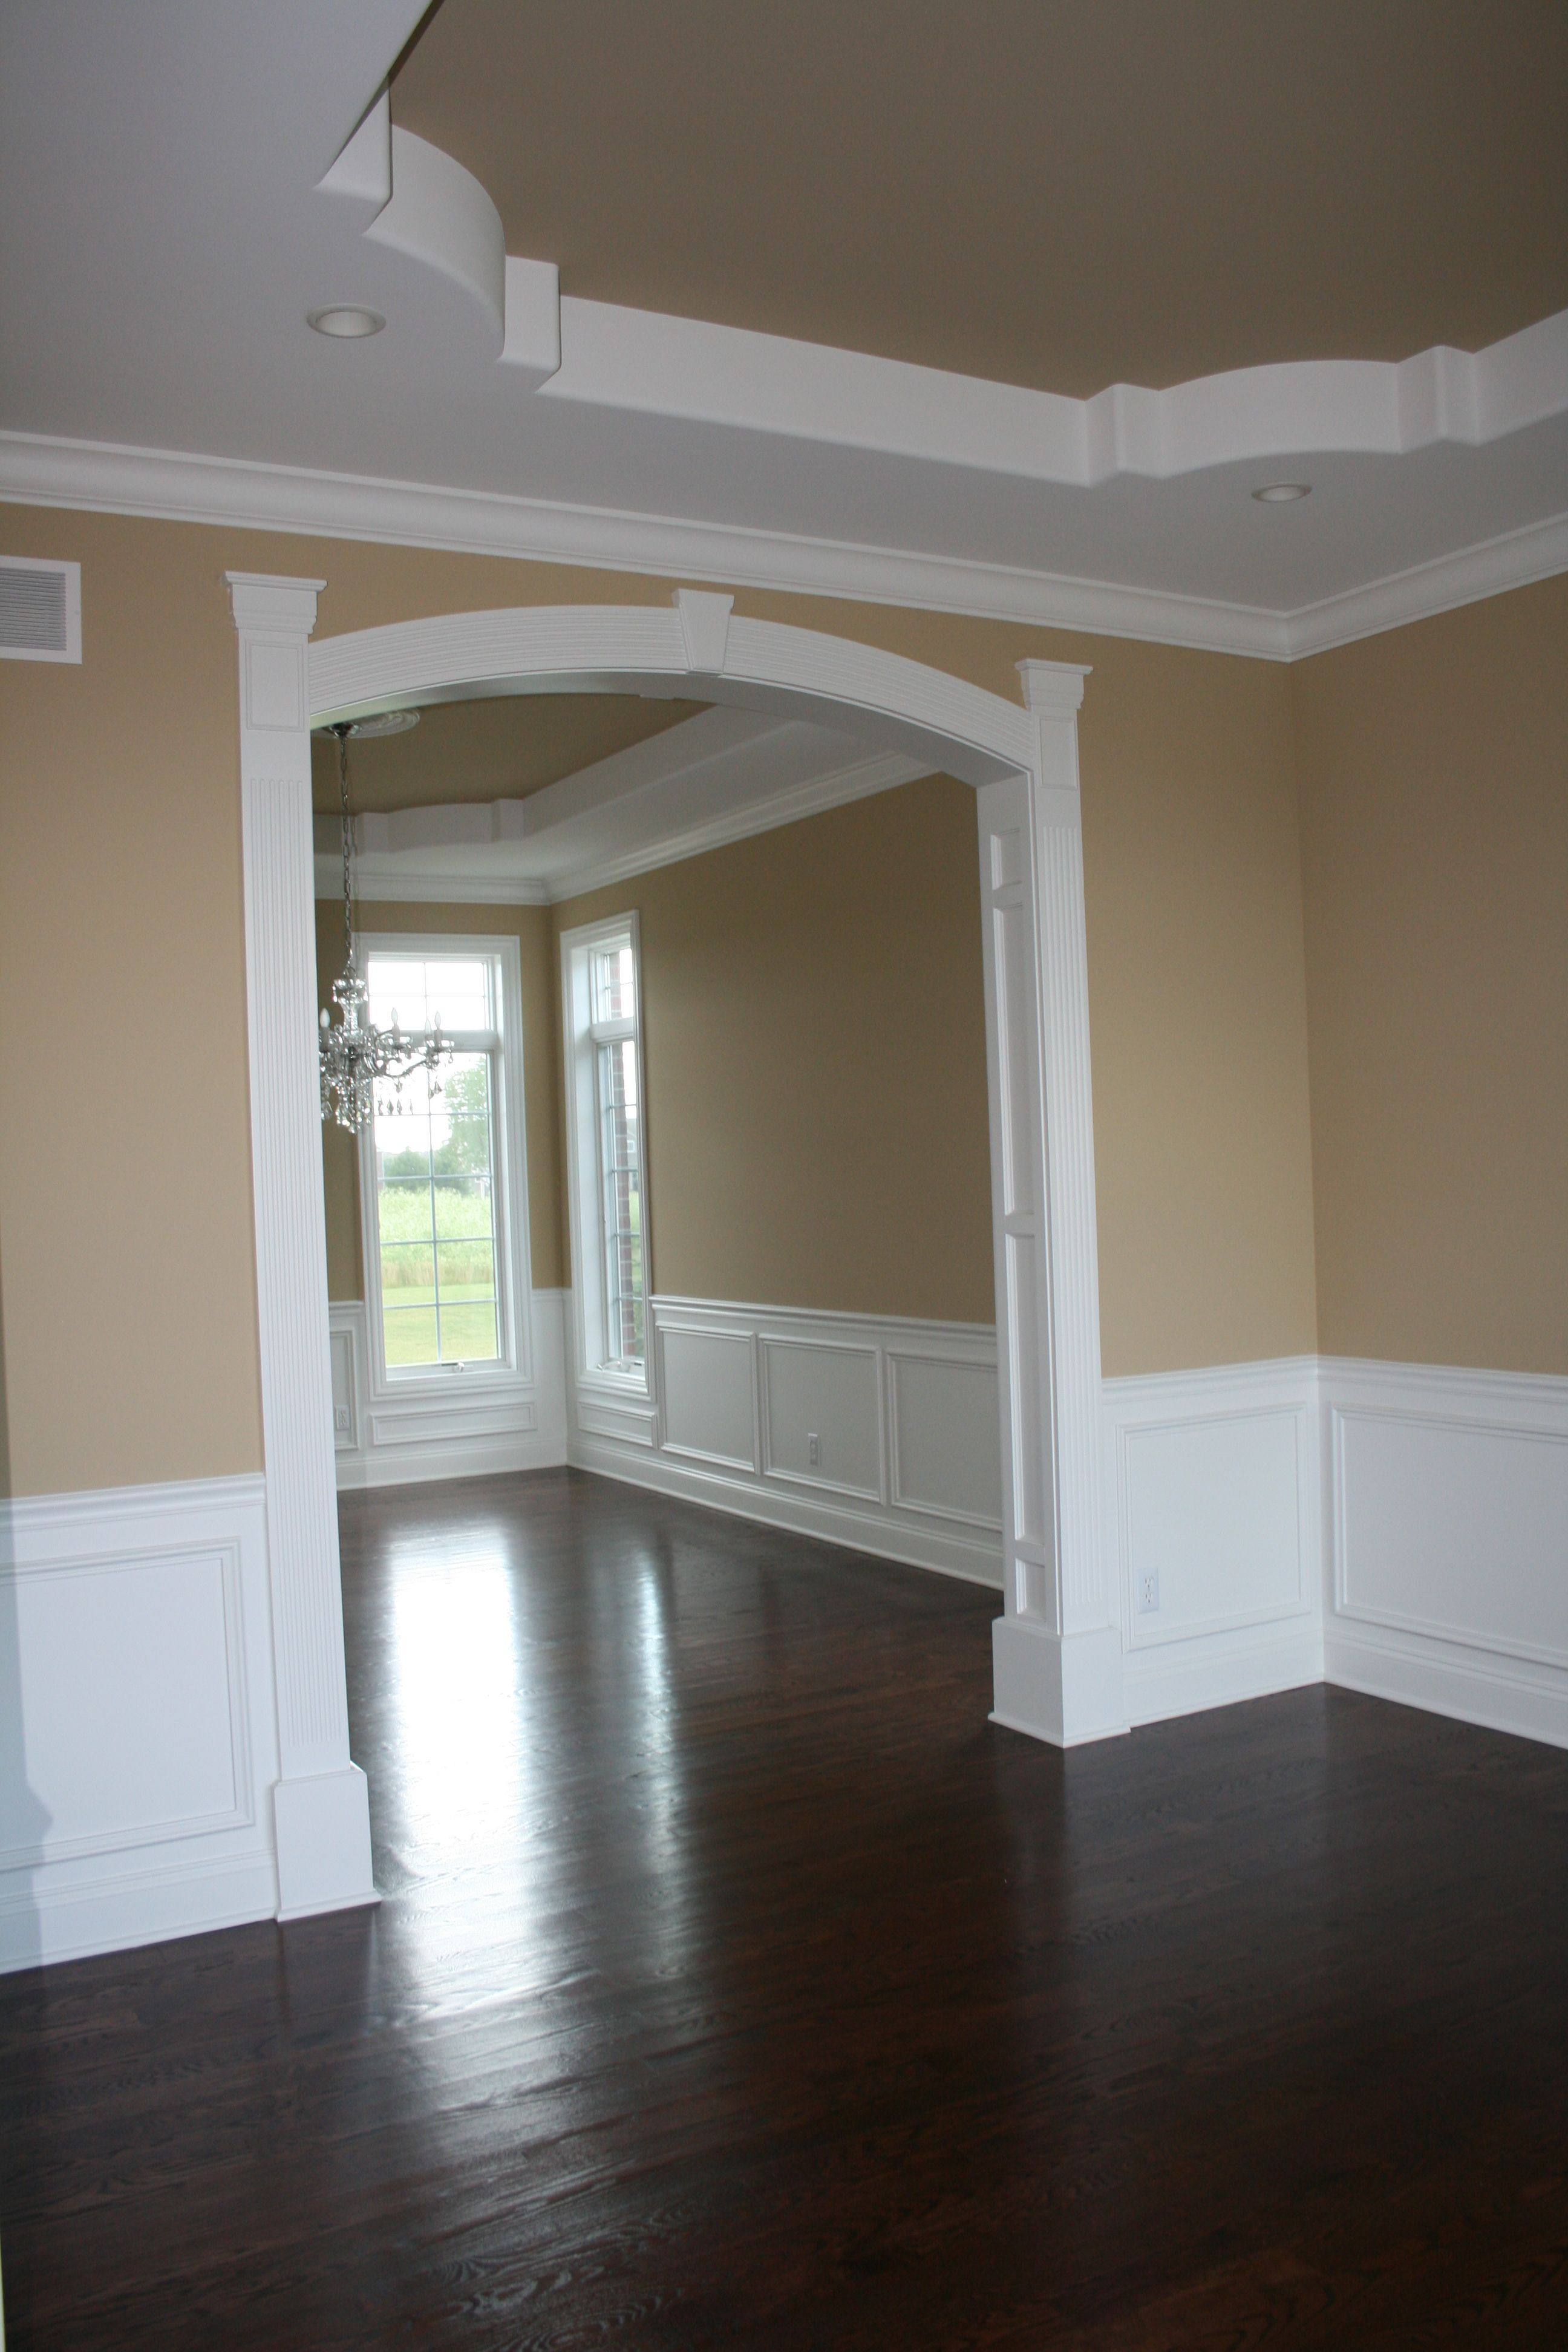 Sw Blonde Custom Color Call 219 762 8388 For Free Estimate Interior Painting By Custom